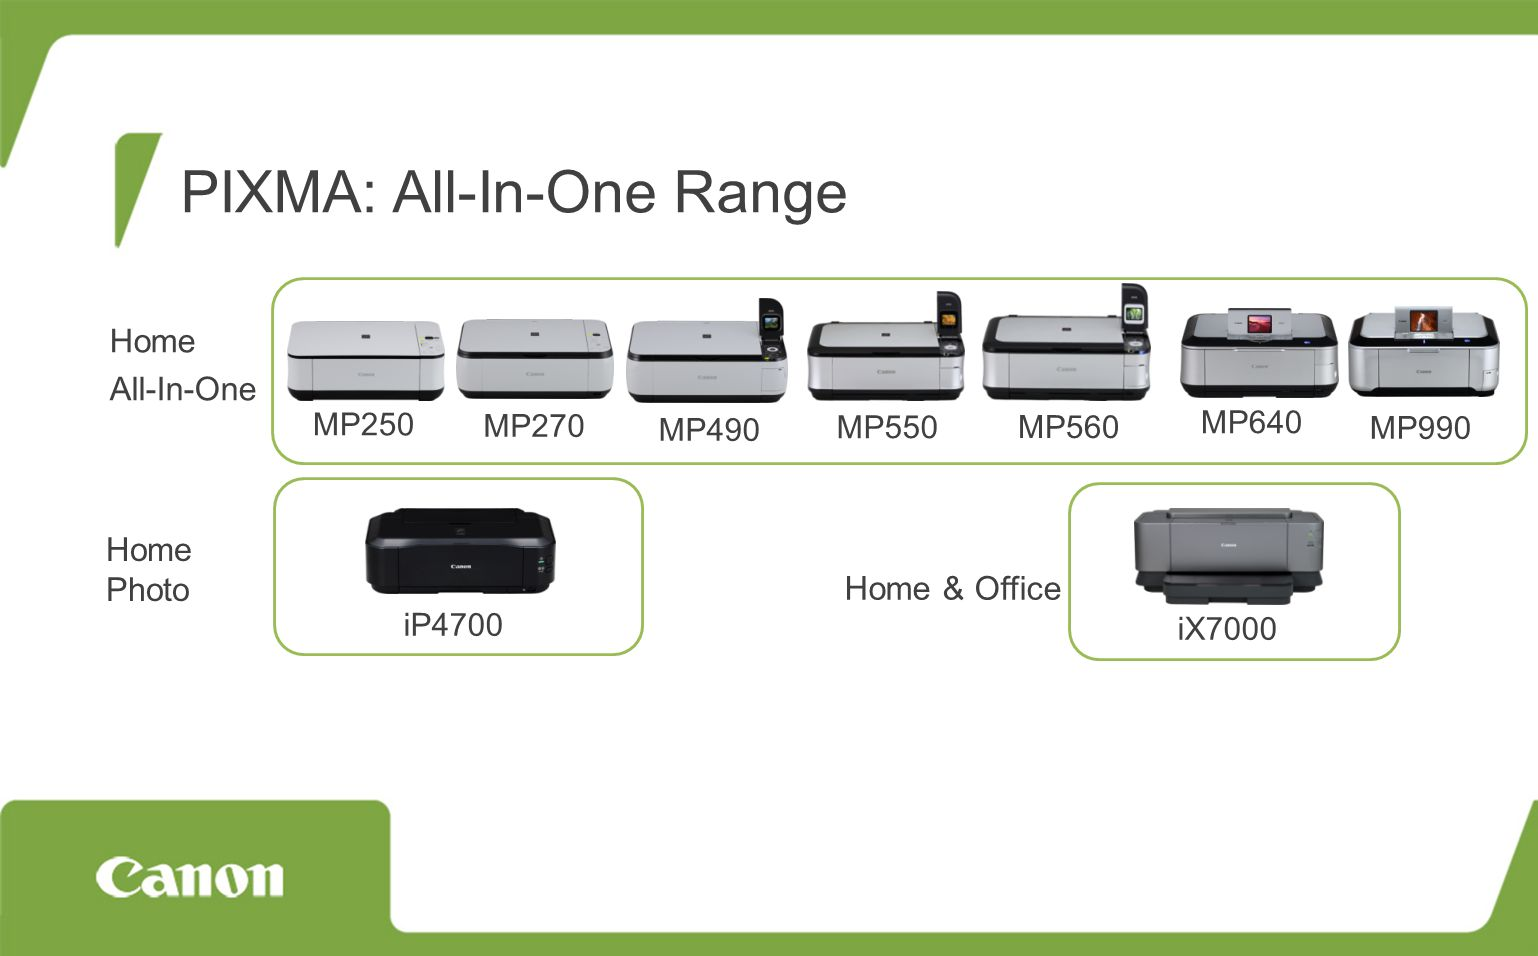 PIXMA: All-In-One Range Home Photo Home All-In-One Home & Office MP250 MP270 MP490 MP550 MP560 MP640 MP990 iP4700 iX7000